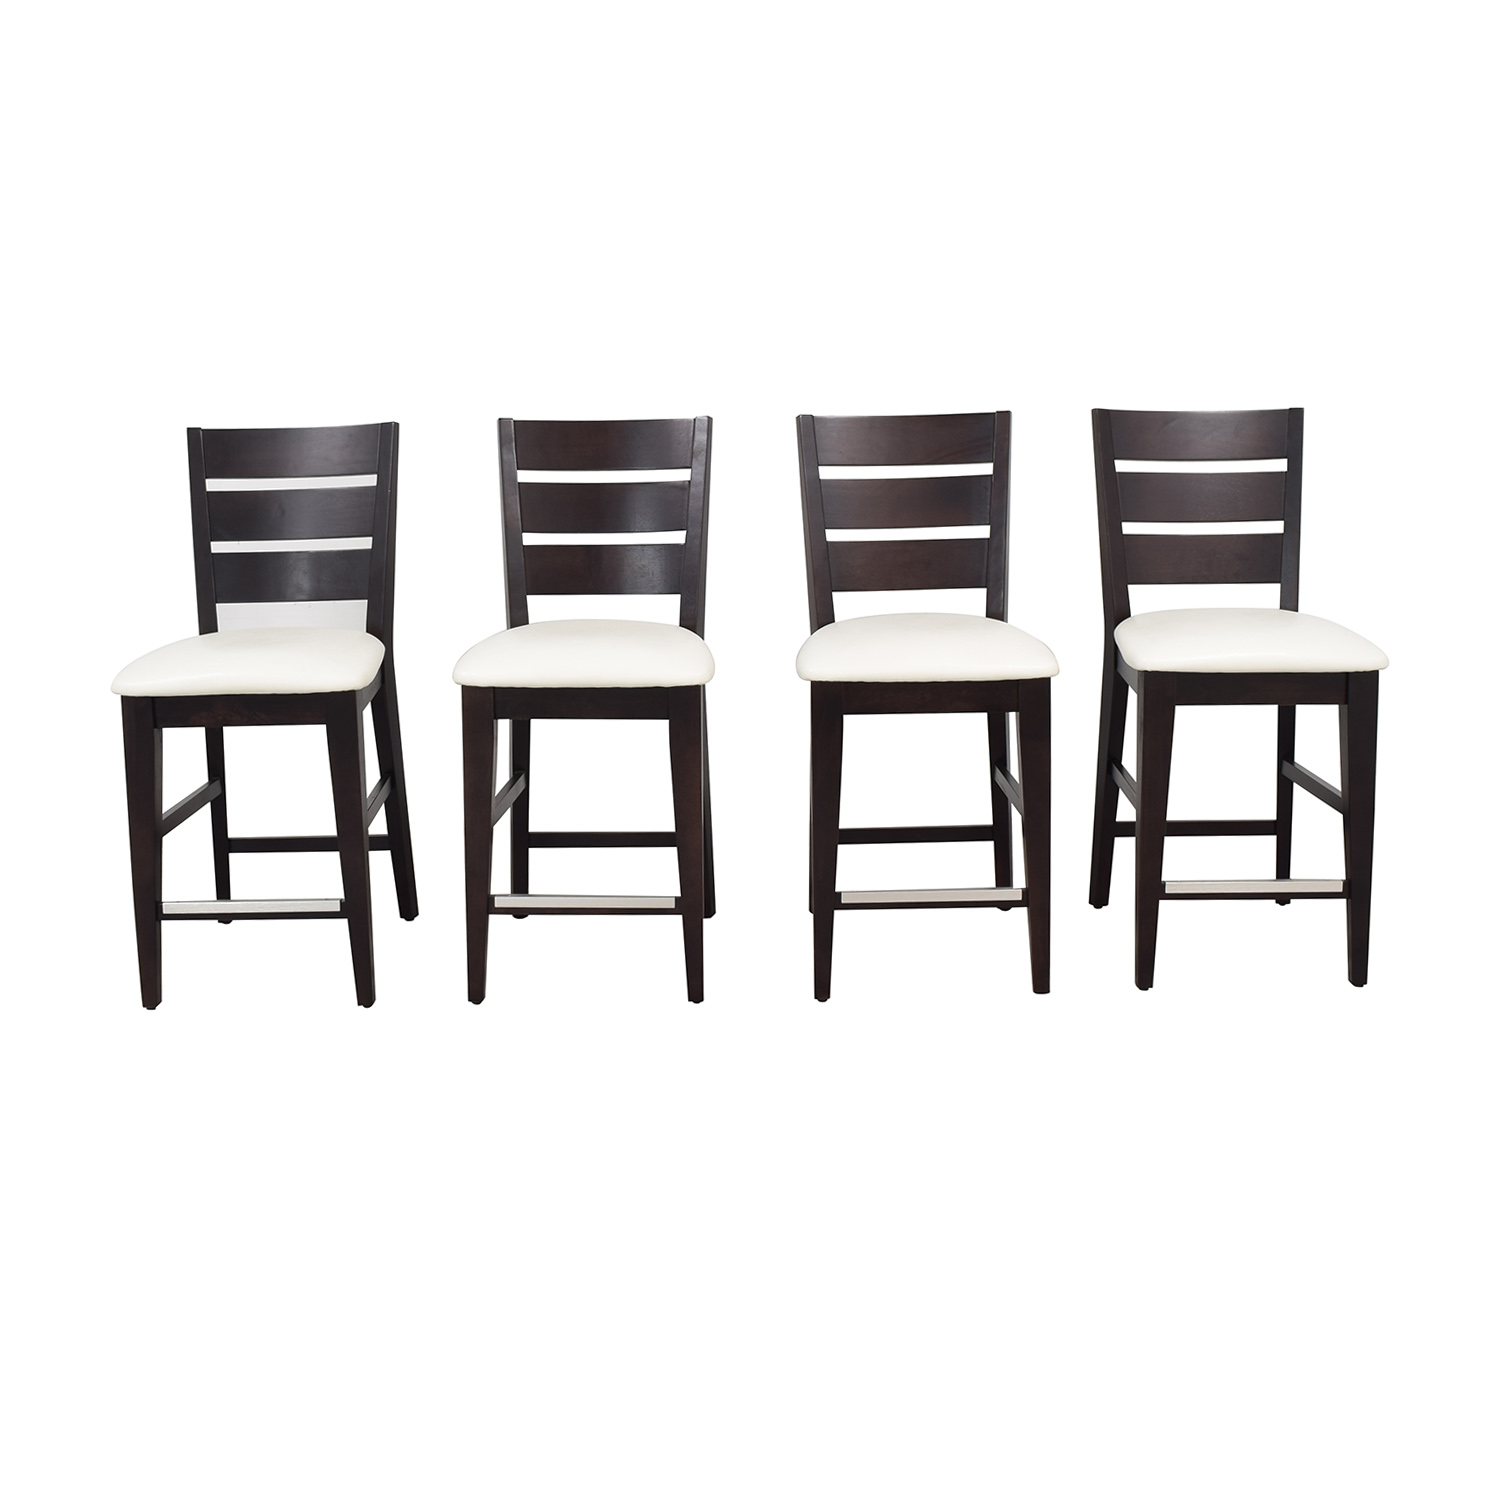 buy Thomasville Upholstered Bar Chairs Thomasville Chairs